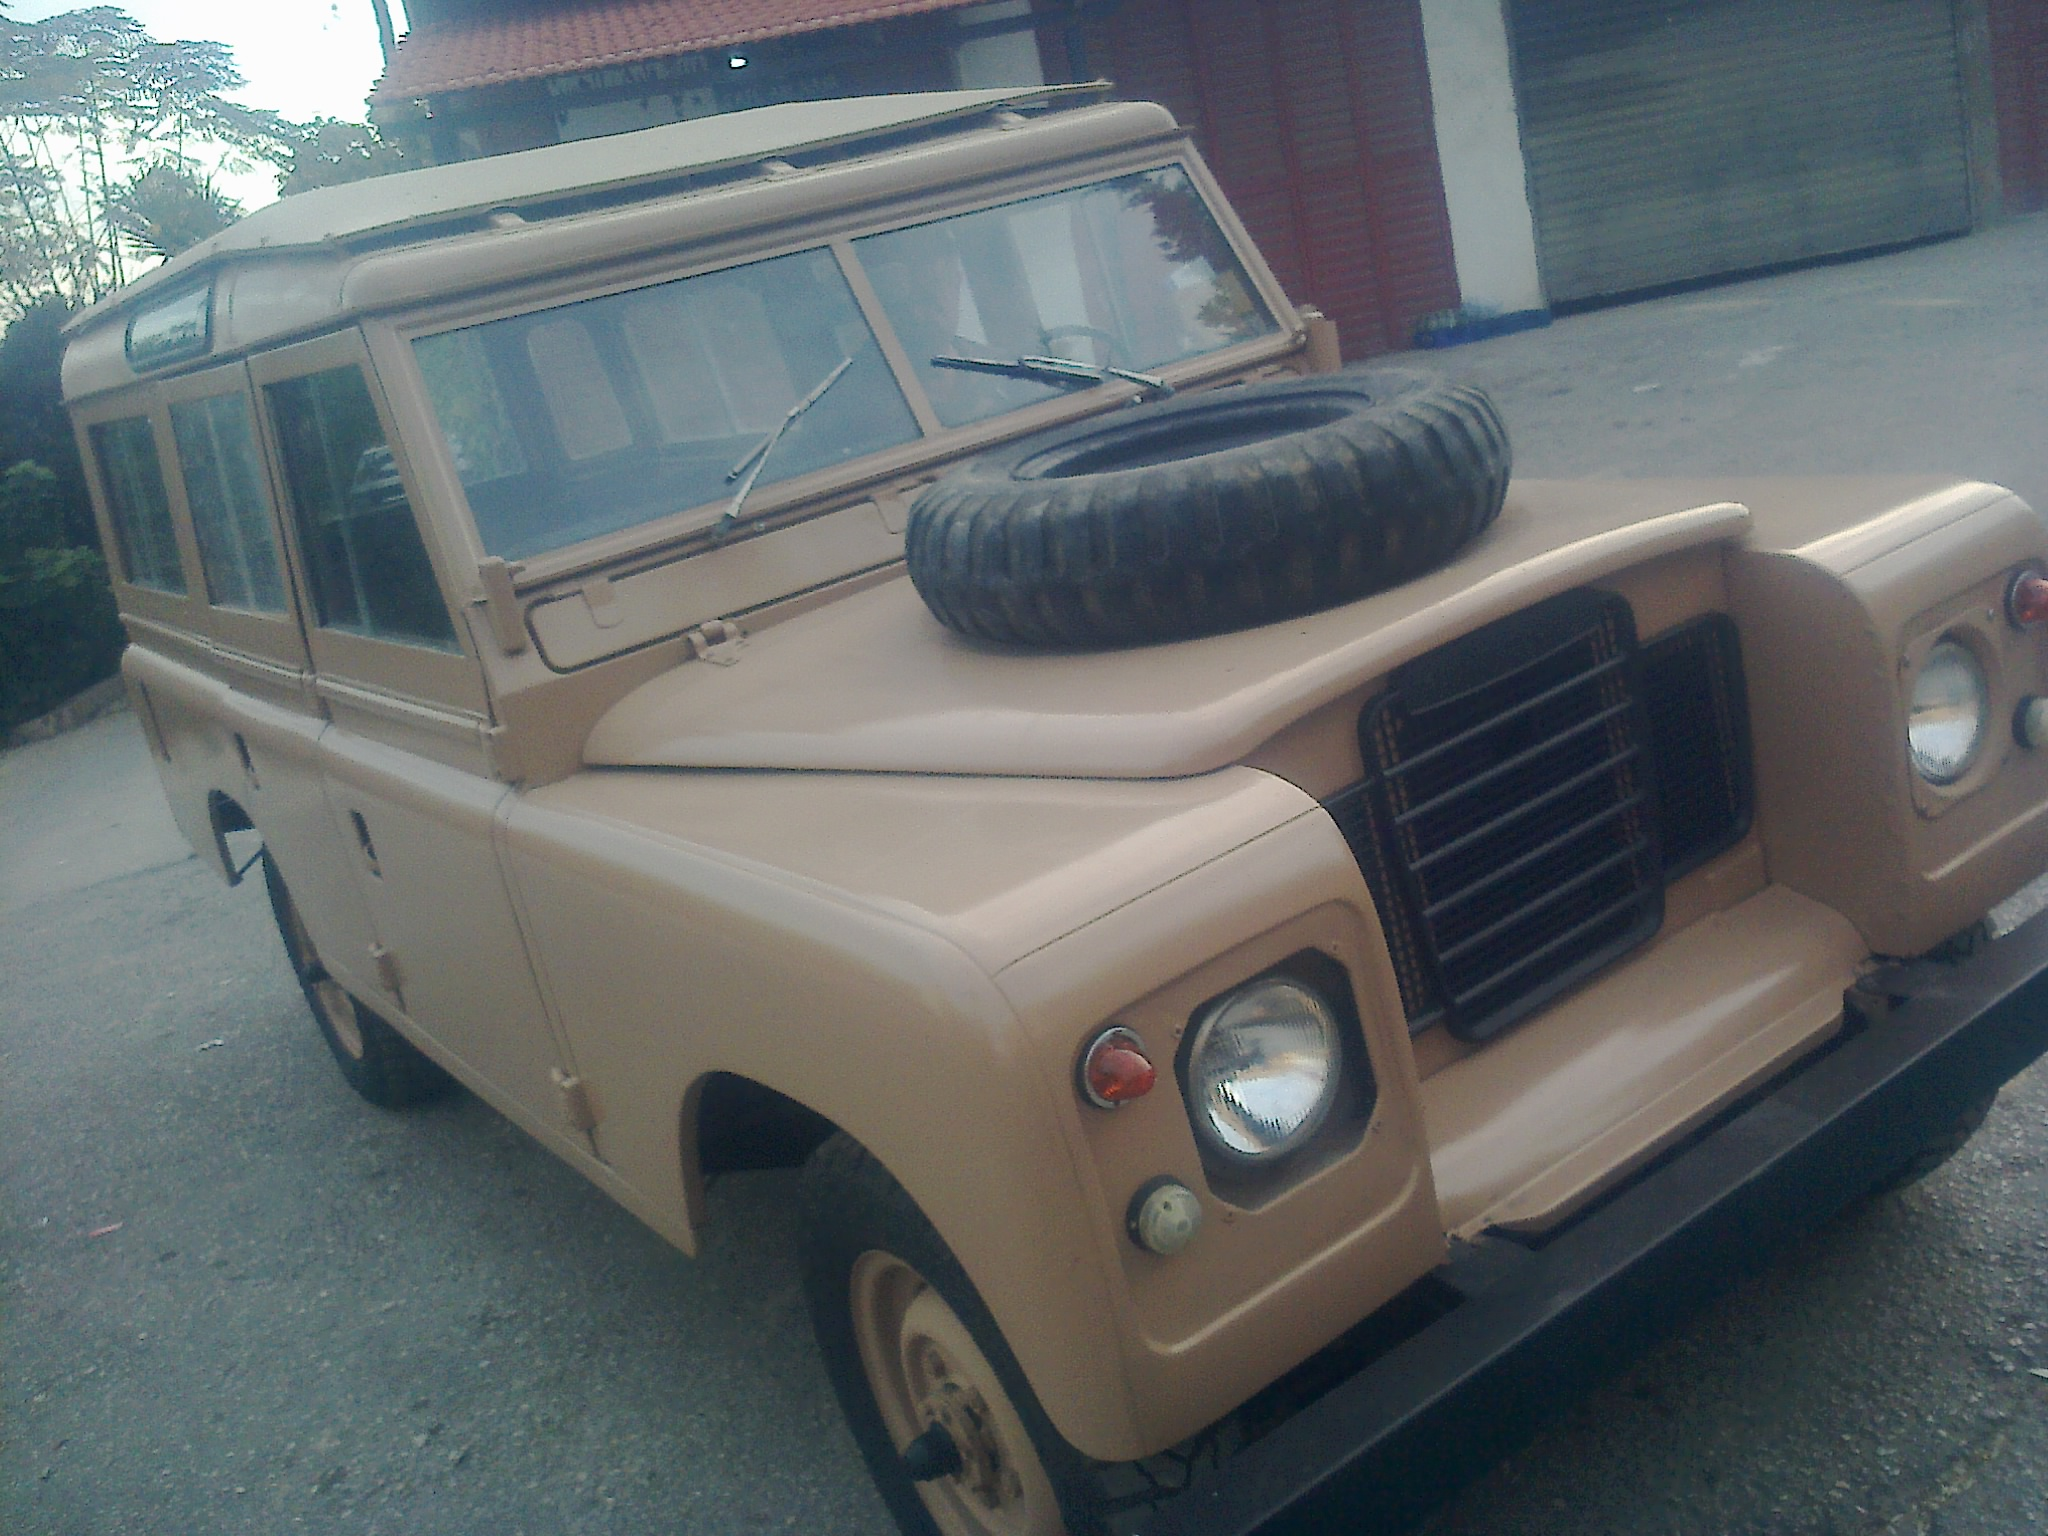 Lebanon fRoad – FOR SALE LAND ROVER III SERIES VERY GOOD